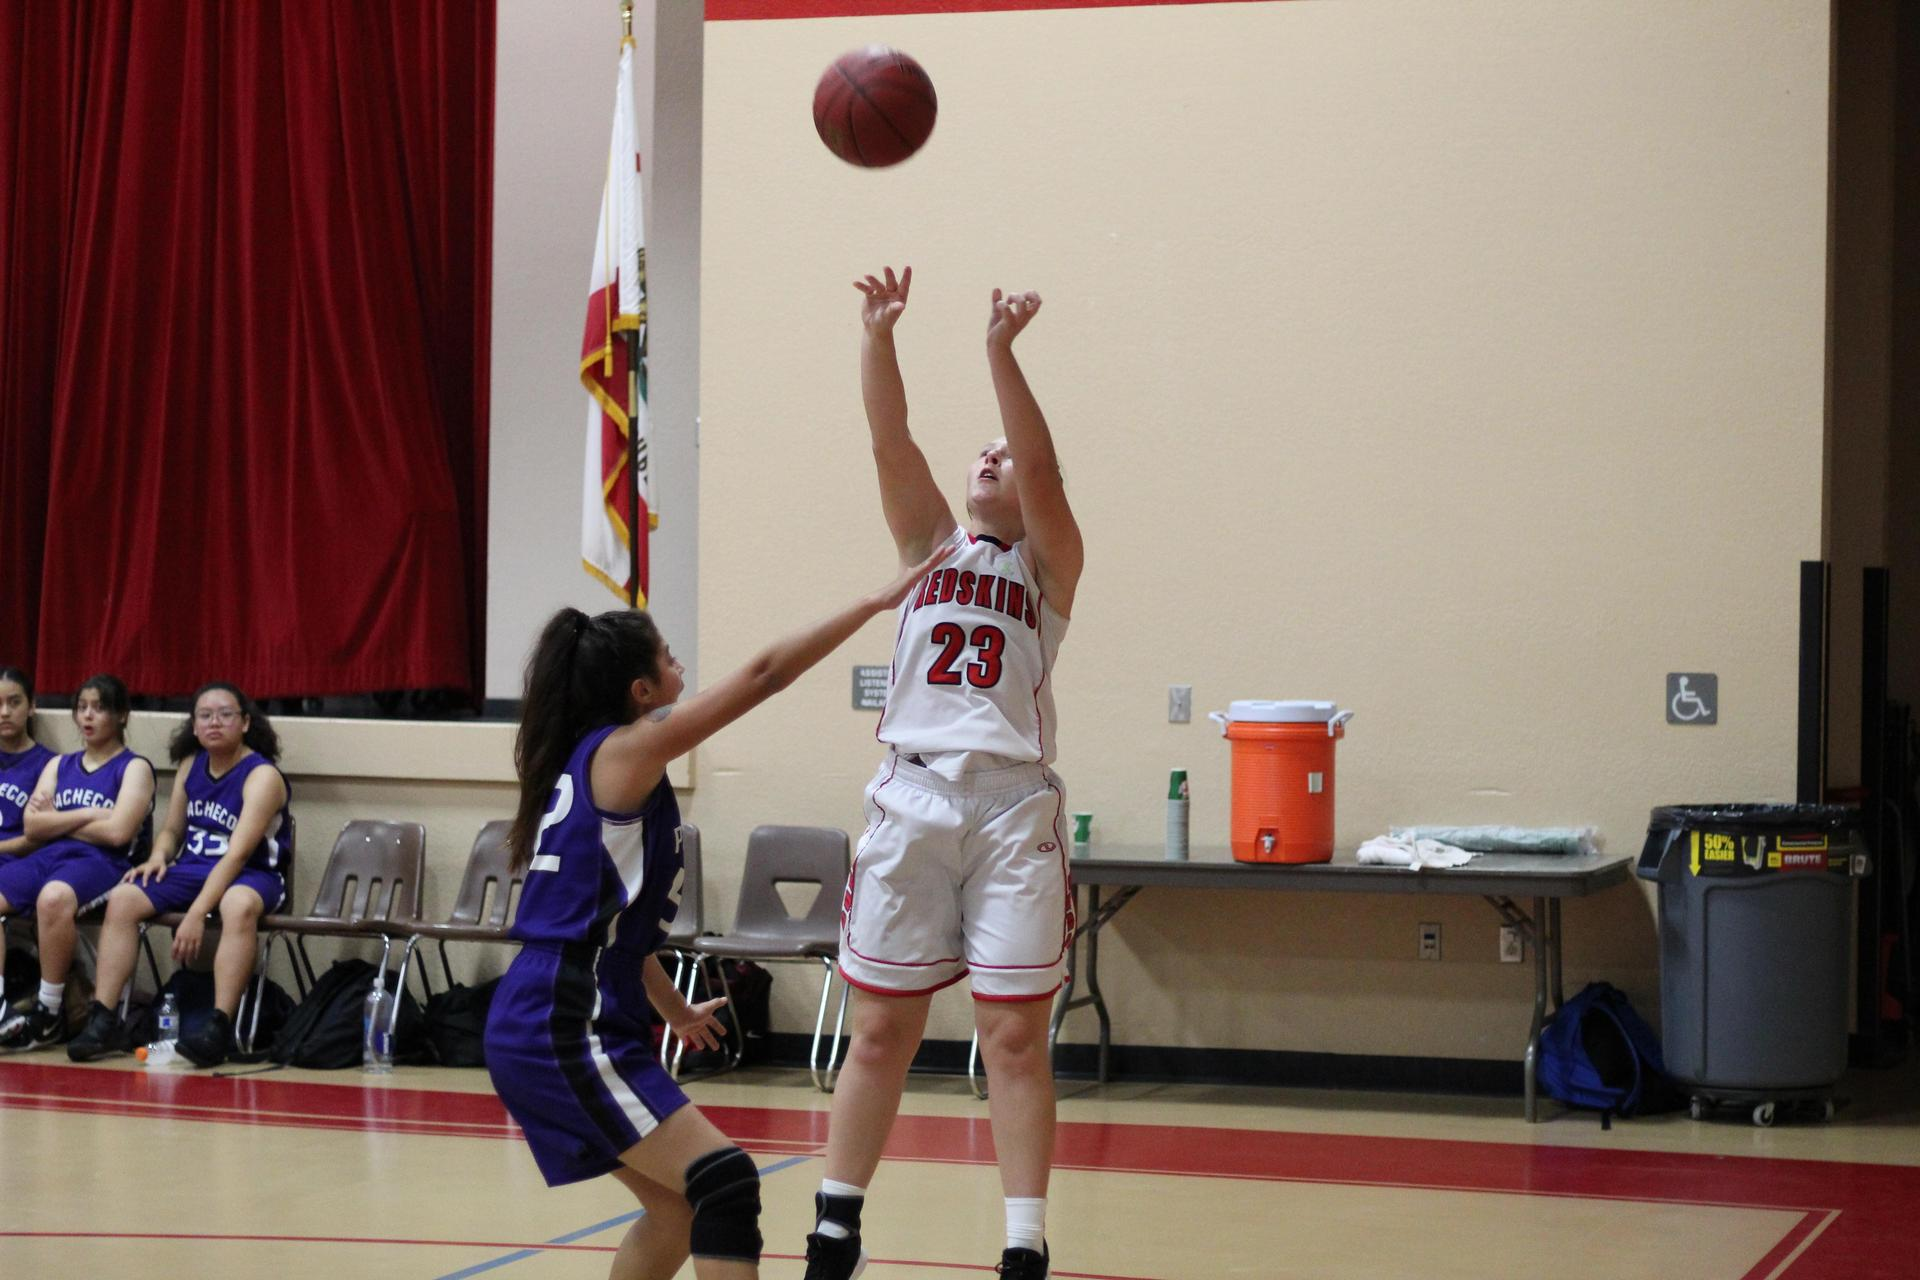 Junior Varsity girls playing basketball against Pacheco